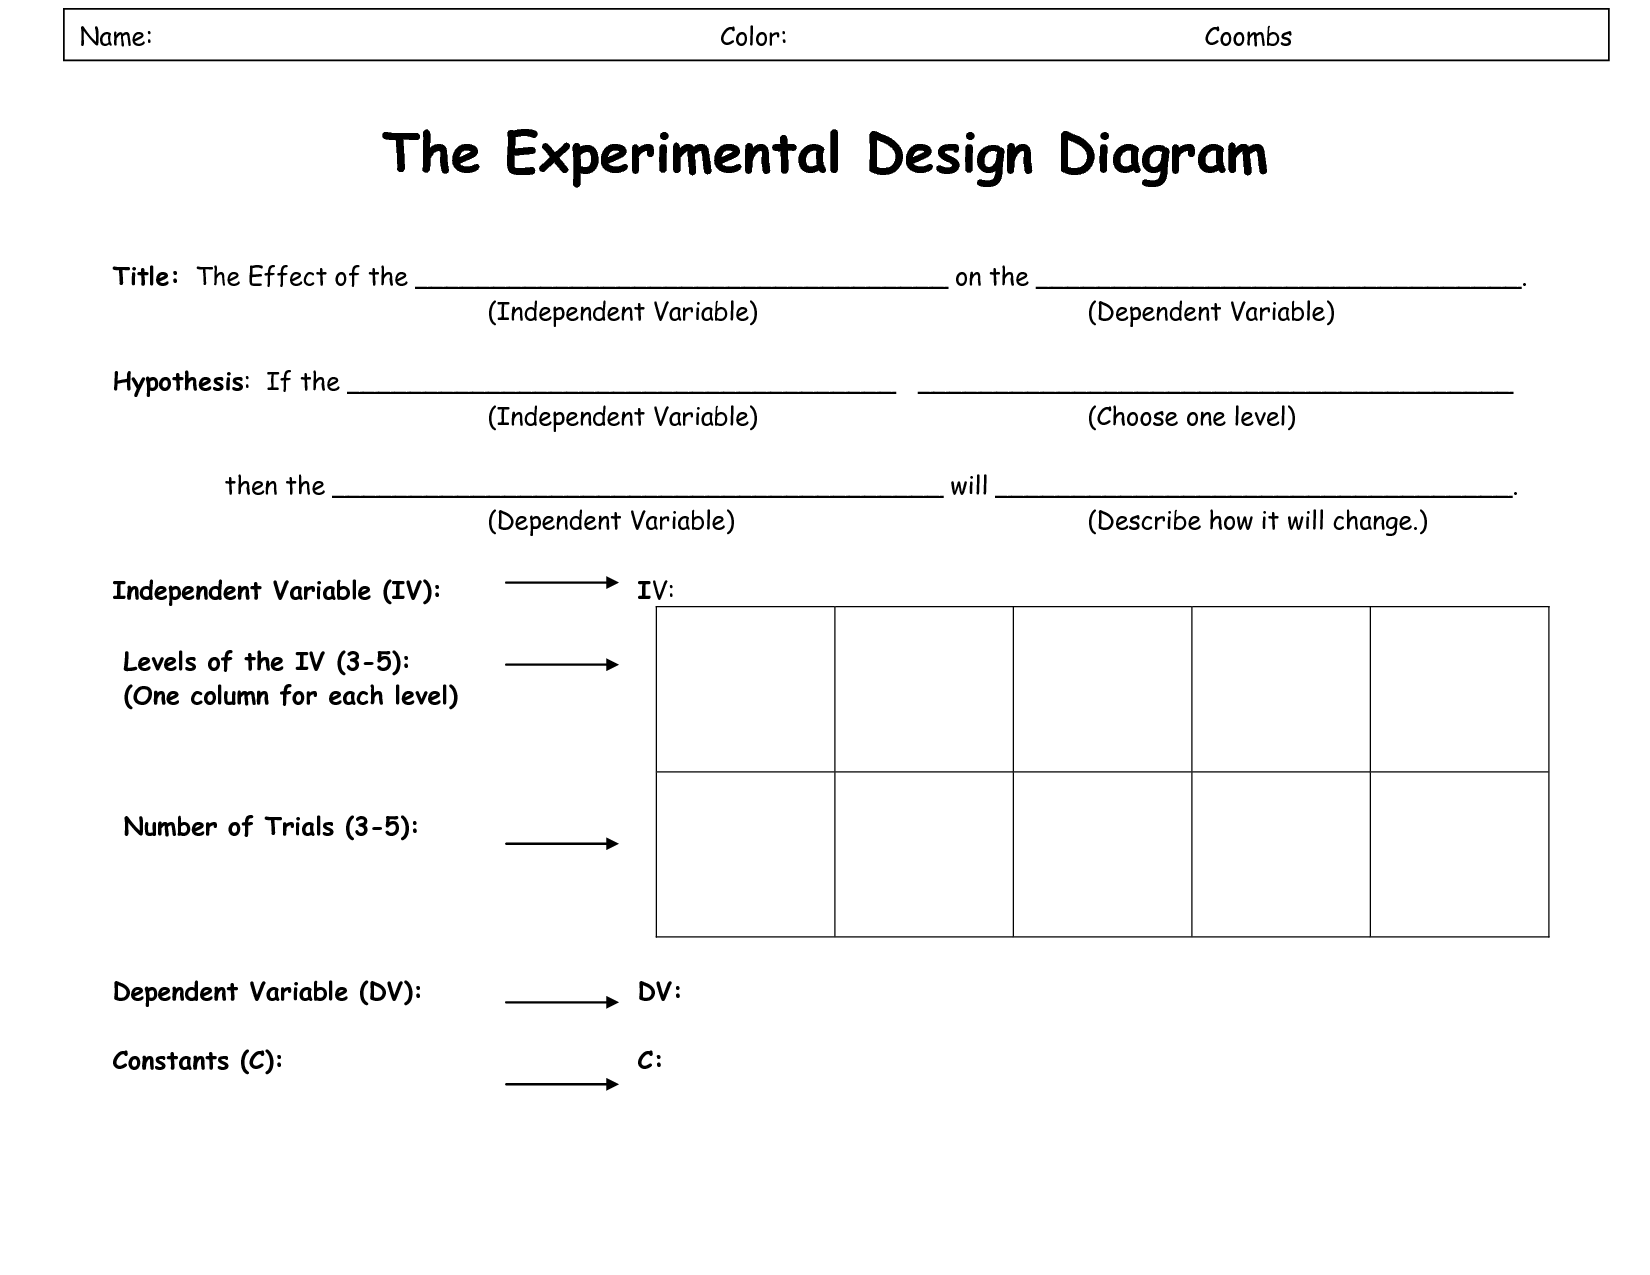 Worksheets Experimental Design Worksheet experimental design worksheet ask com image search projects to search